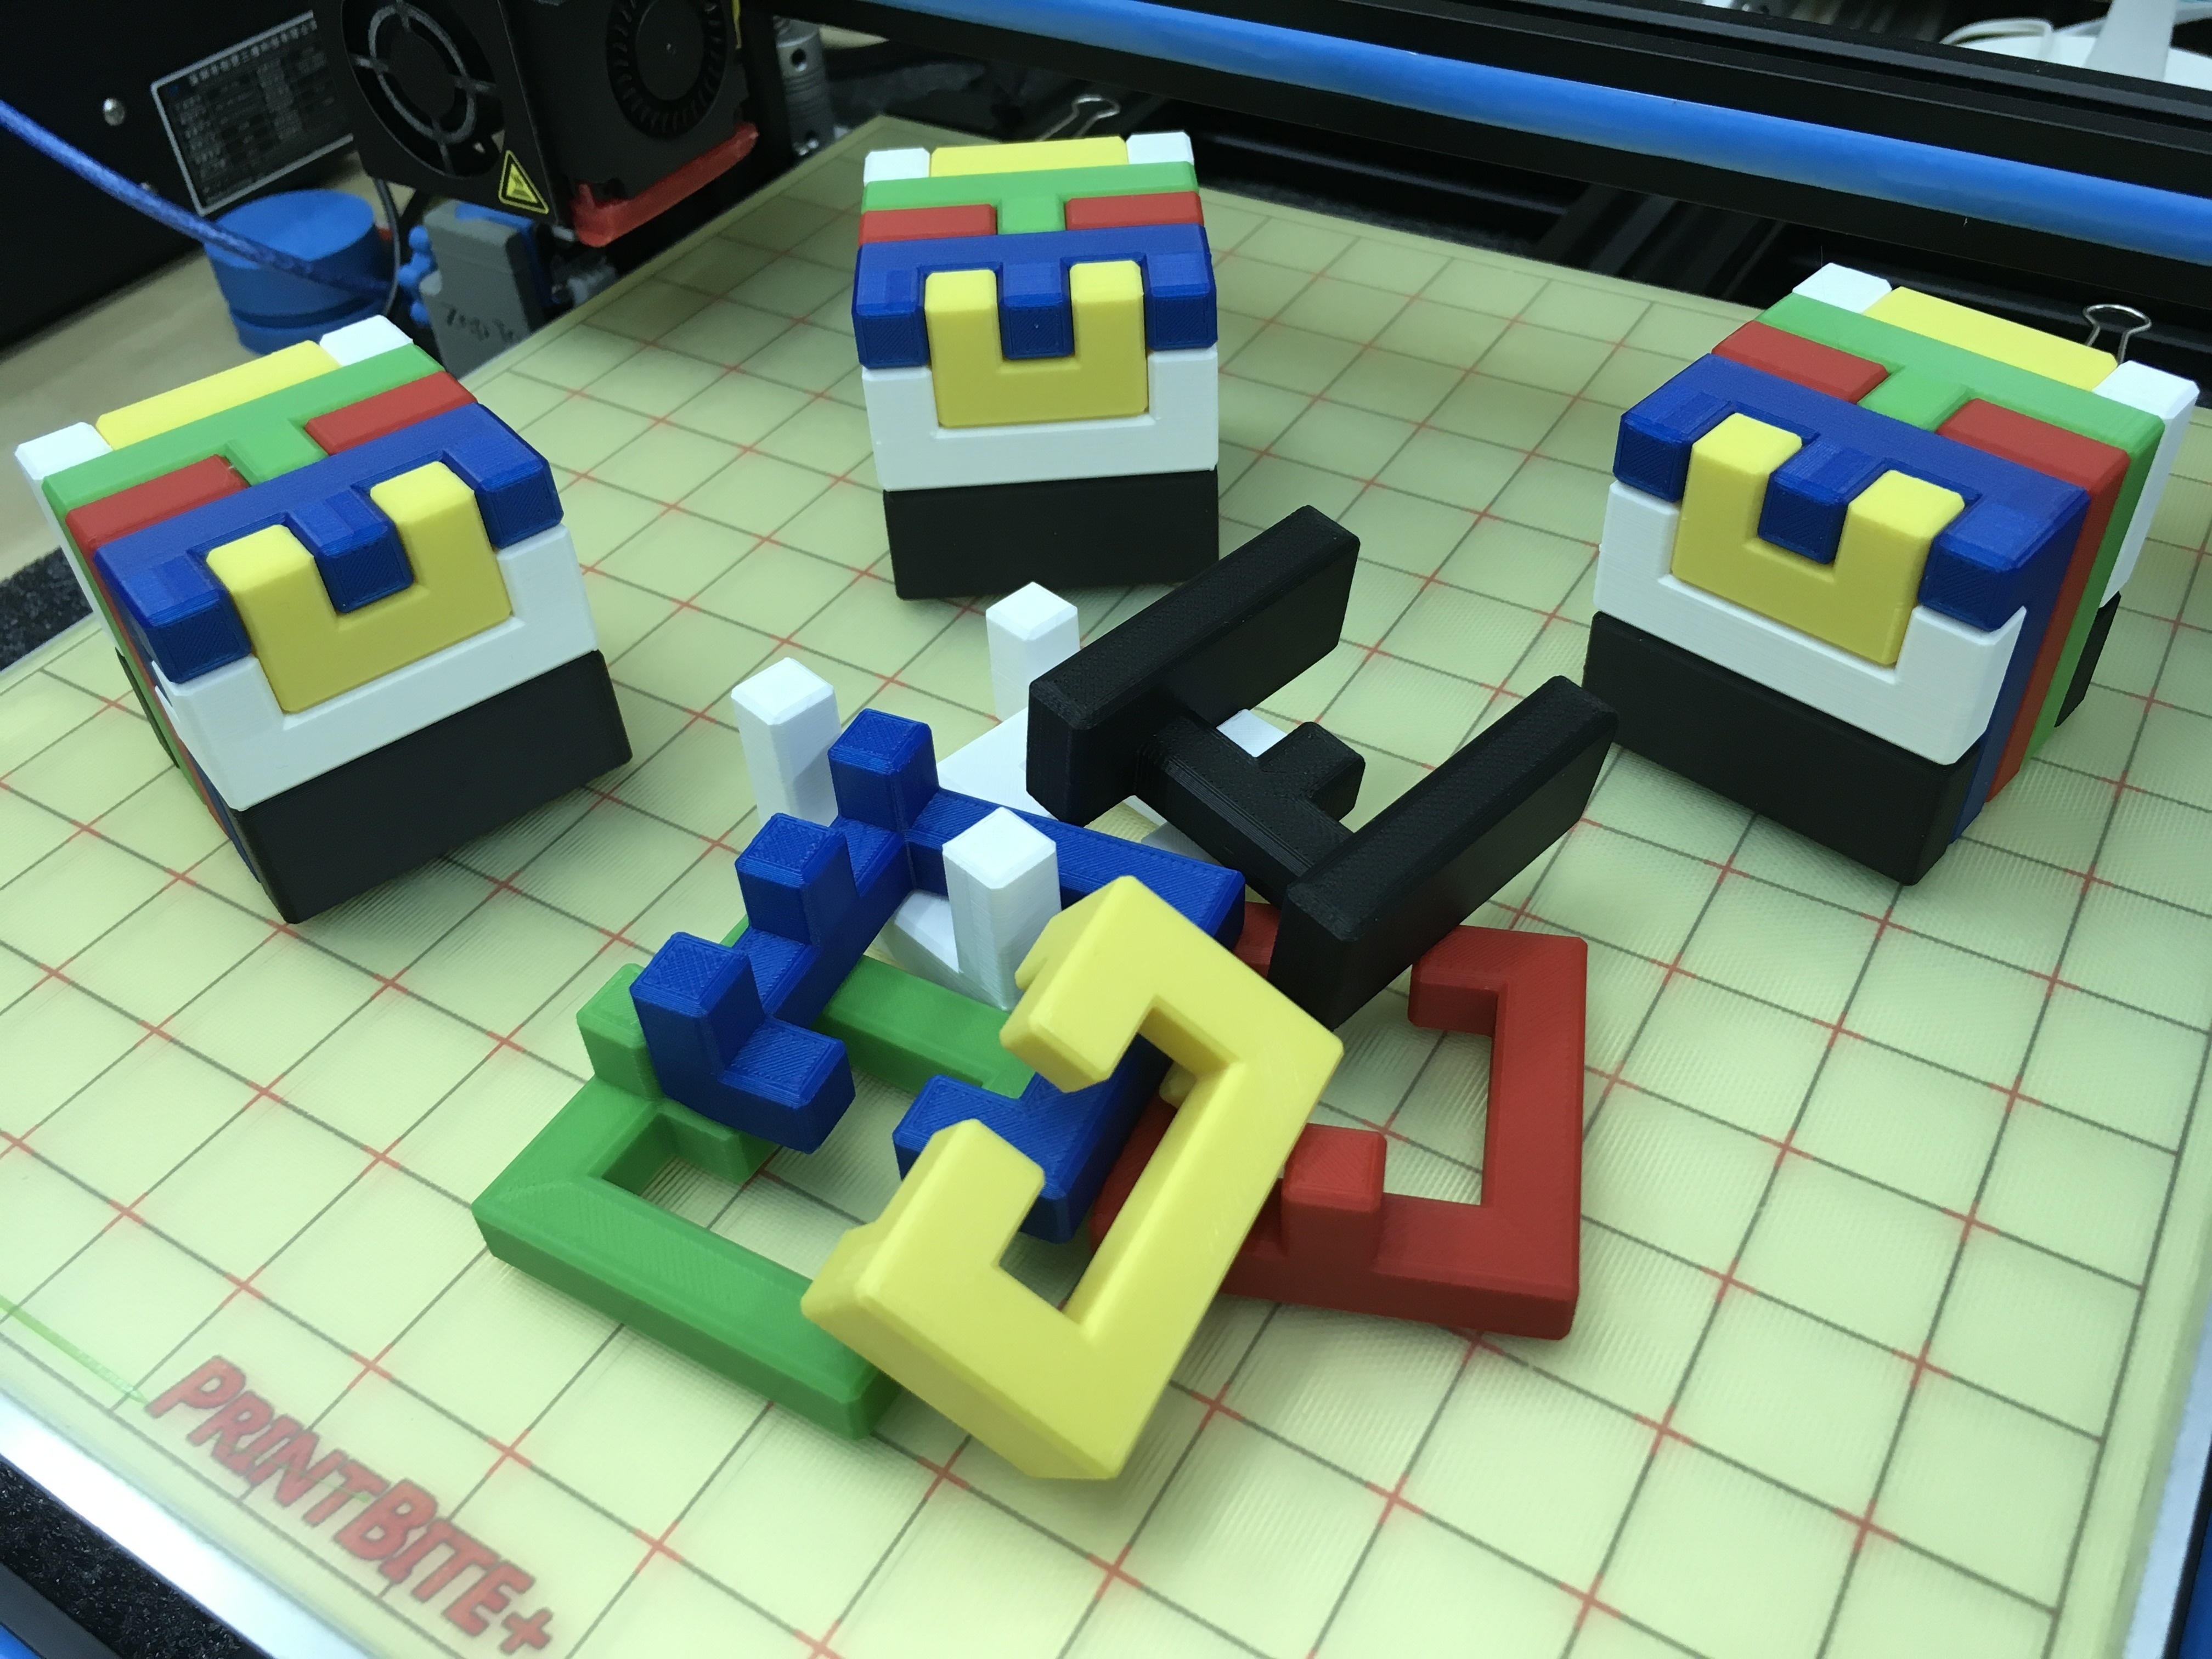 3D Printed Printable Interlocking Puzzle #4 - Level 11Richgain - 3D Printable Puzzles